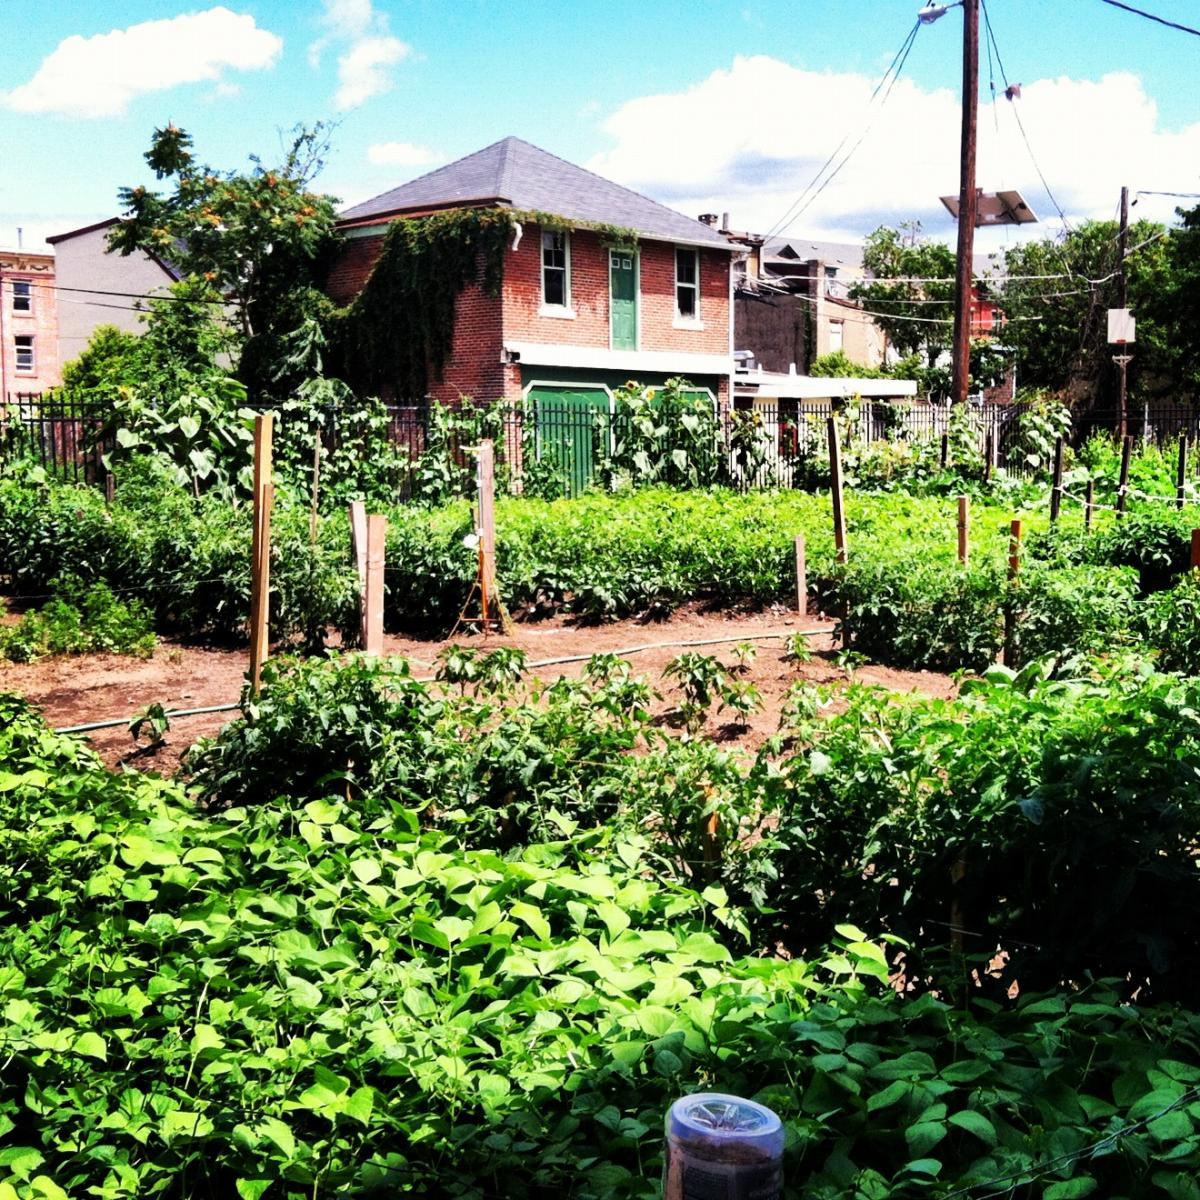 Farming for Nature: Designing Urban Farms and Gardens for Ecosystem Services